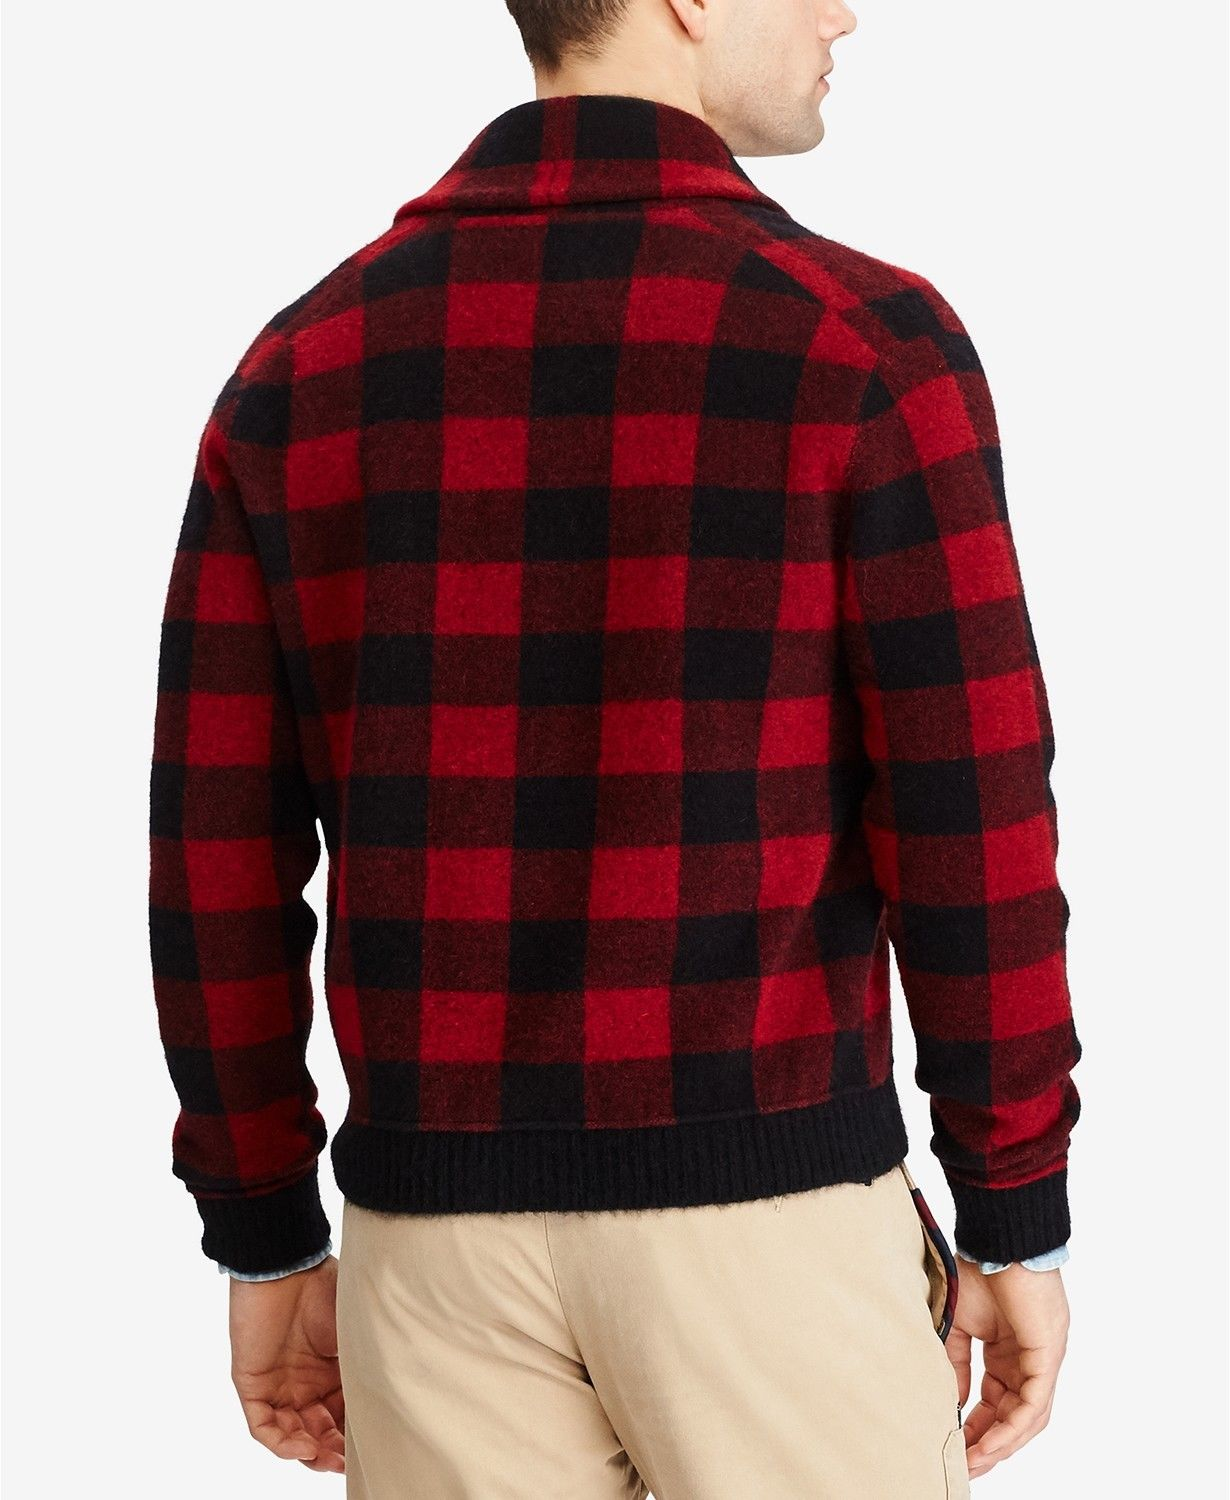 56f9084c Polo Ralph Lauren Mens Jacket classic buffalo plaid pattern Size Med $495  NWT